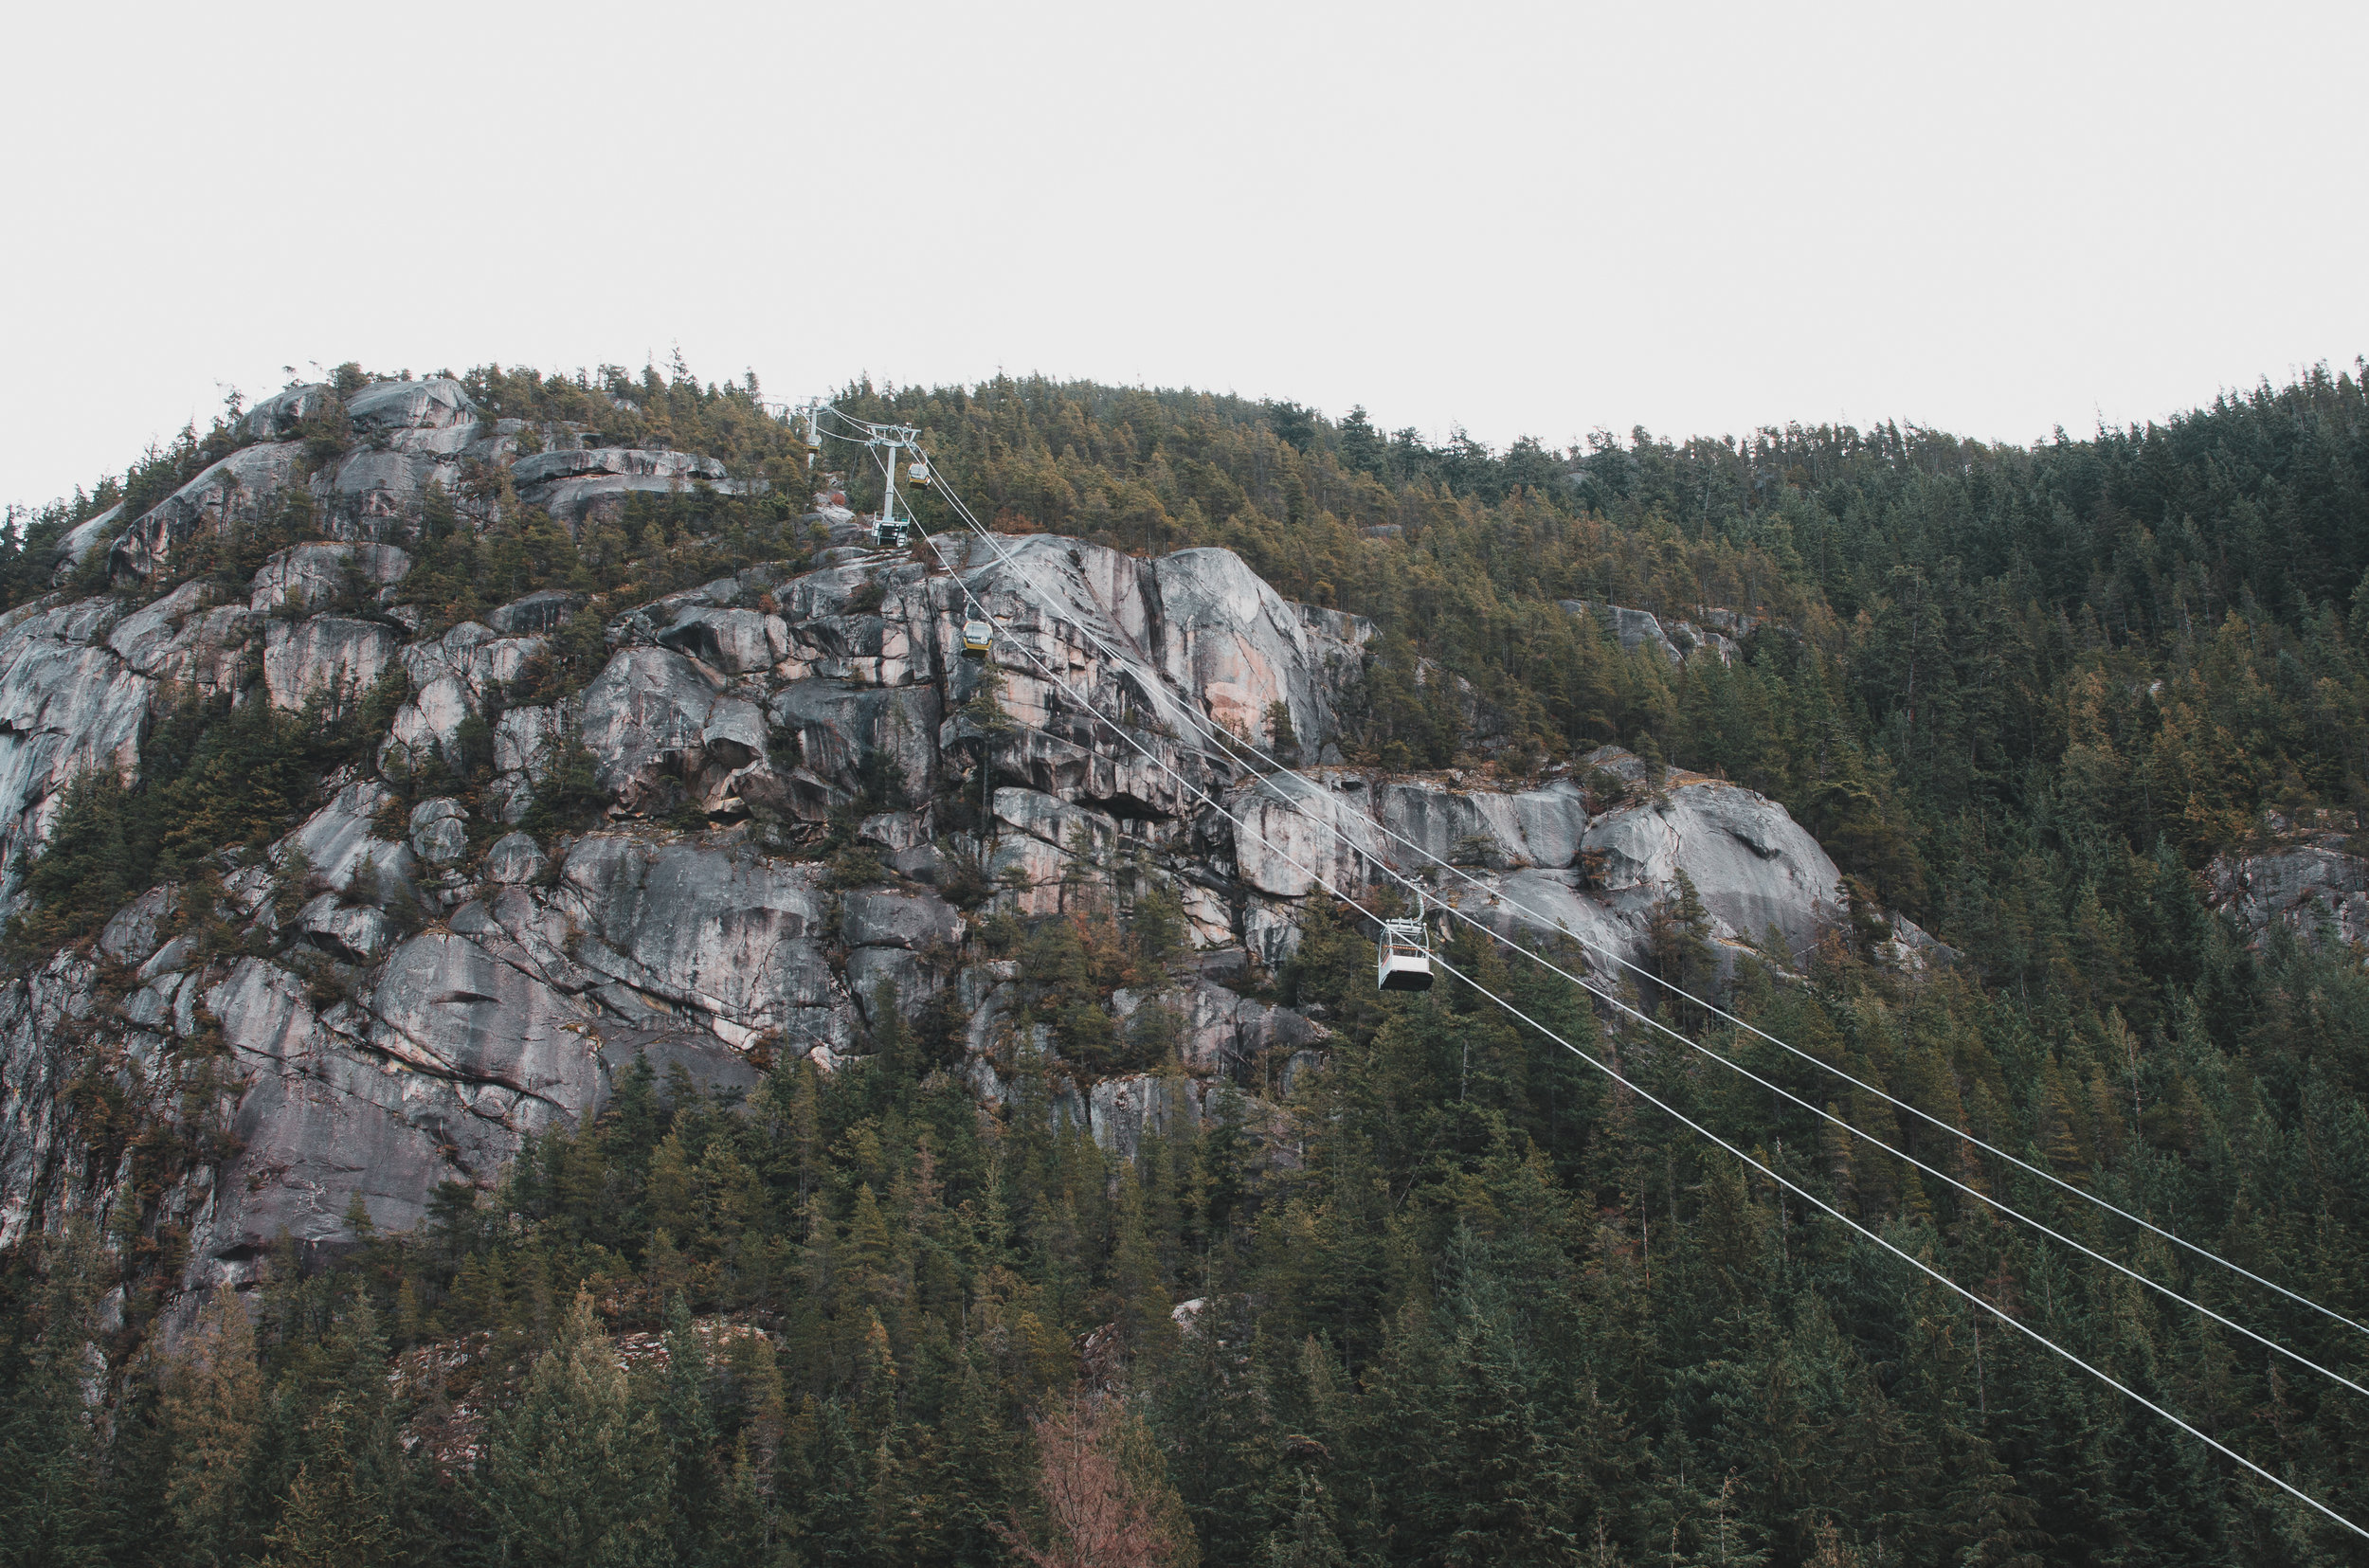 Stay in Squamish to save money on a Whistler weekend trip